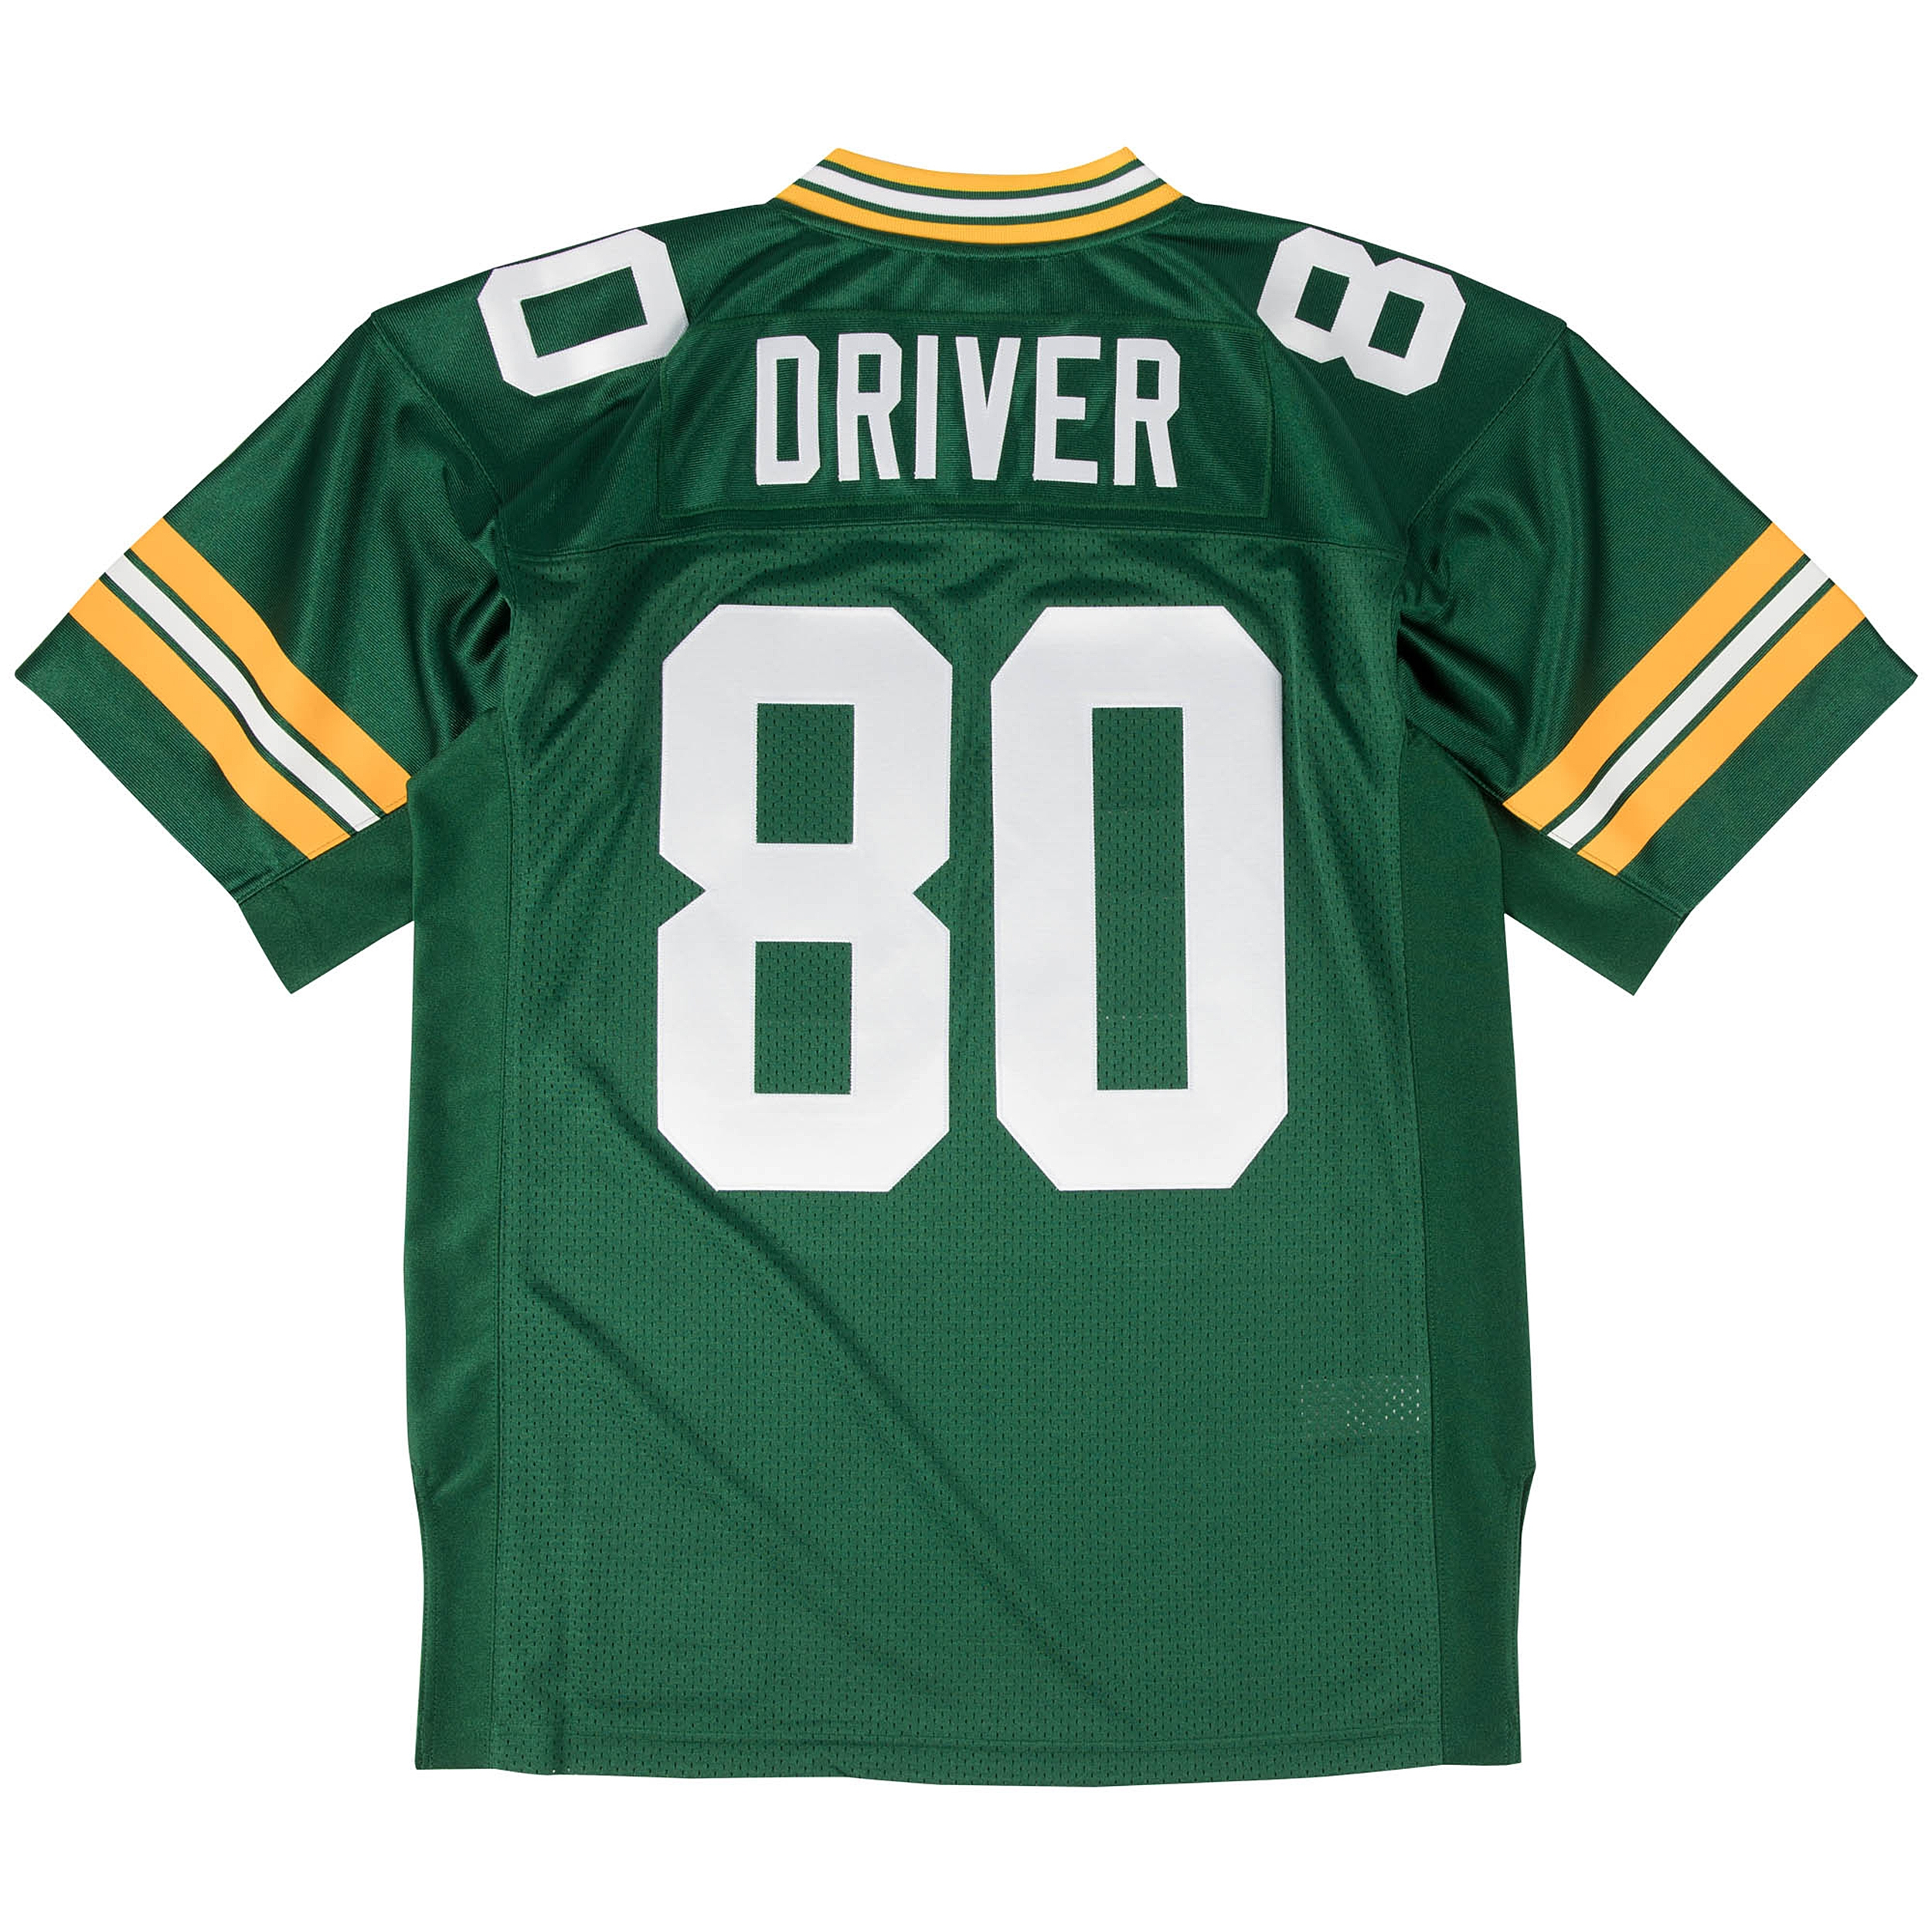 #80 Donald Driver 2000 Throwback Authentic Jersey